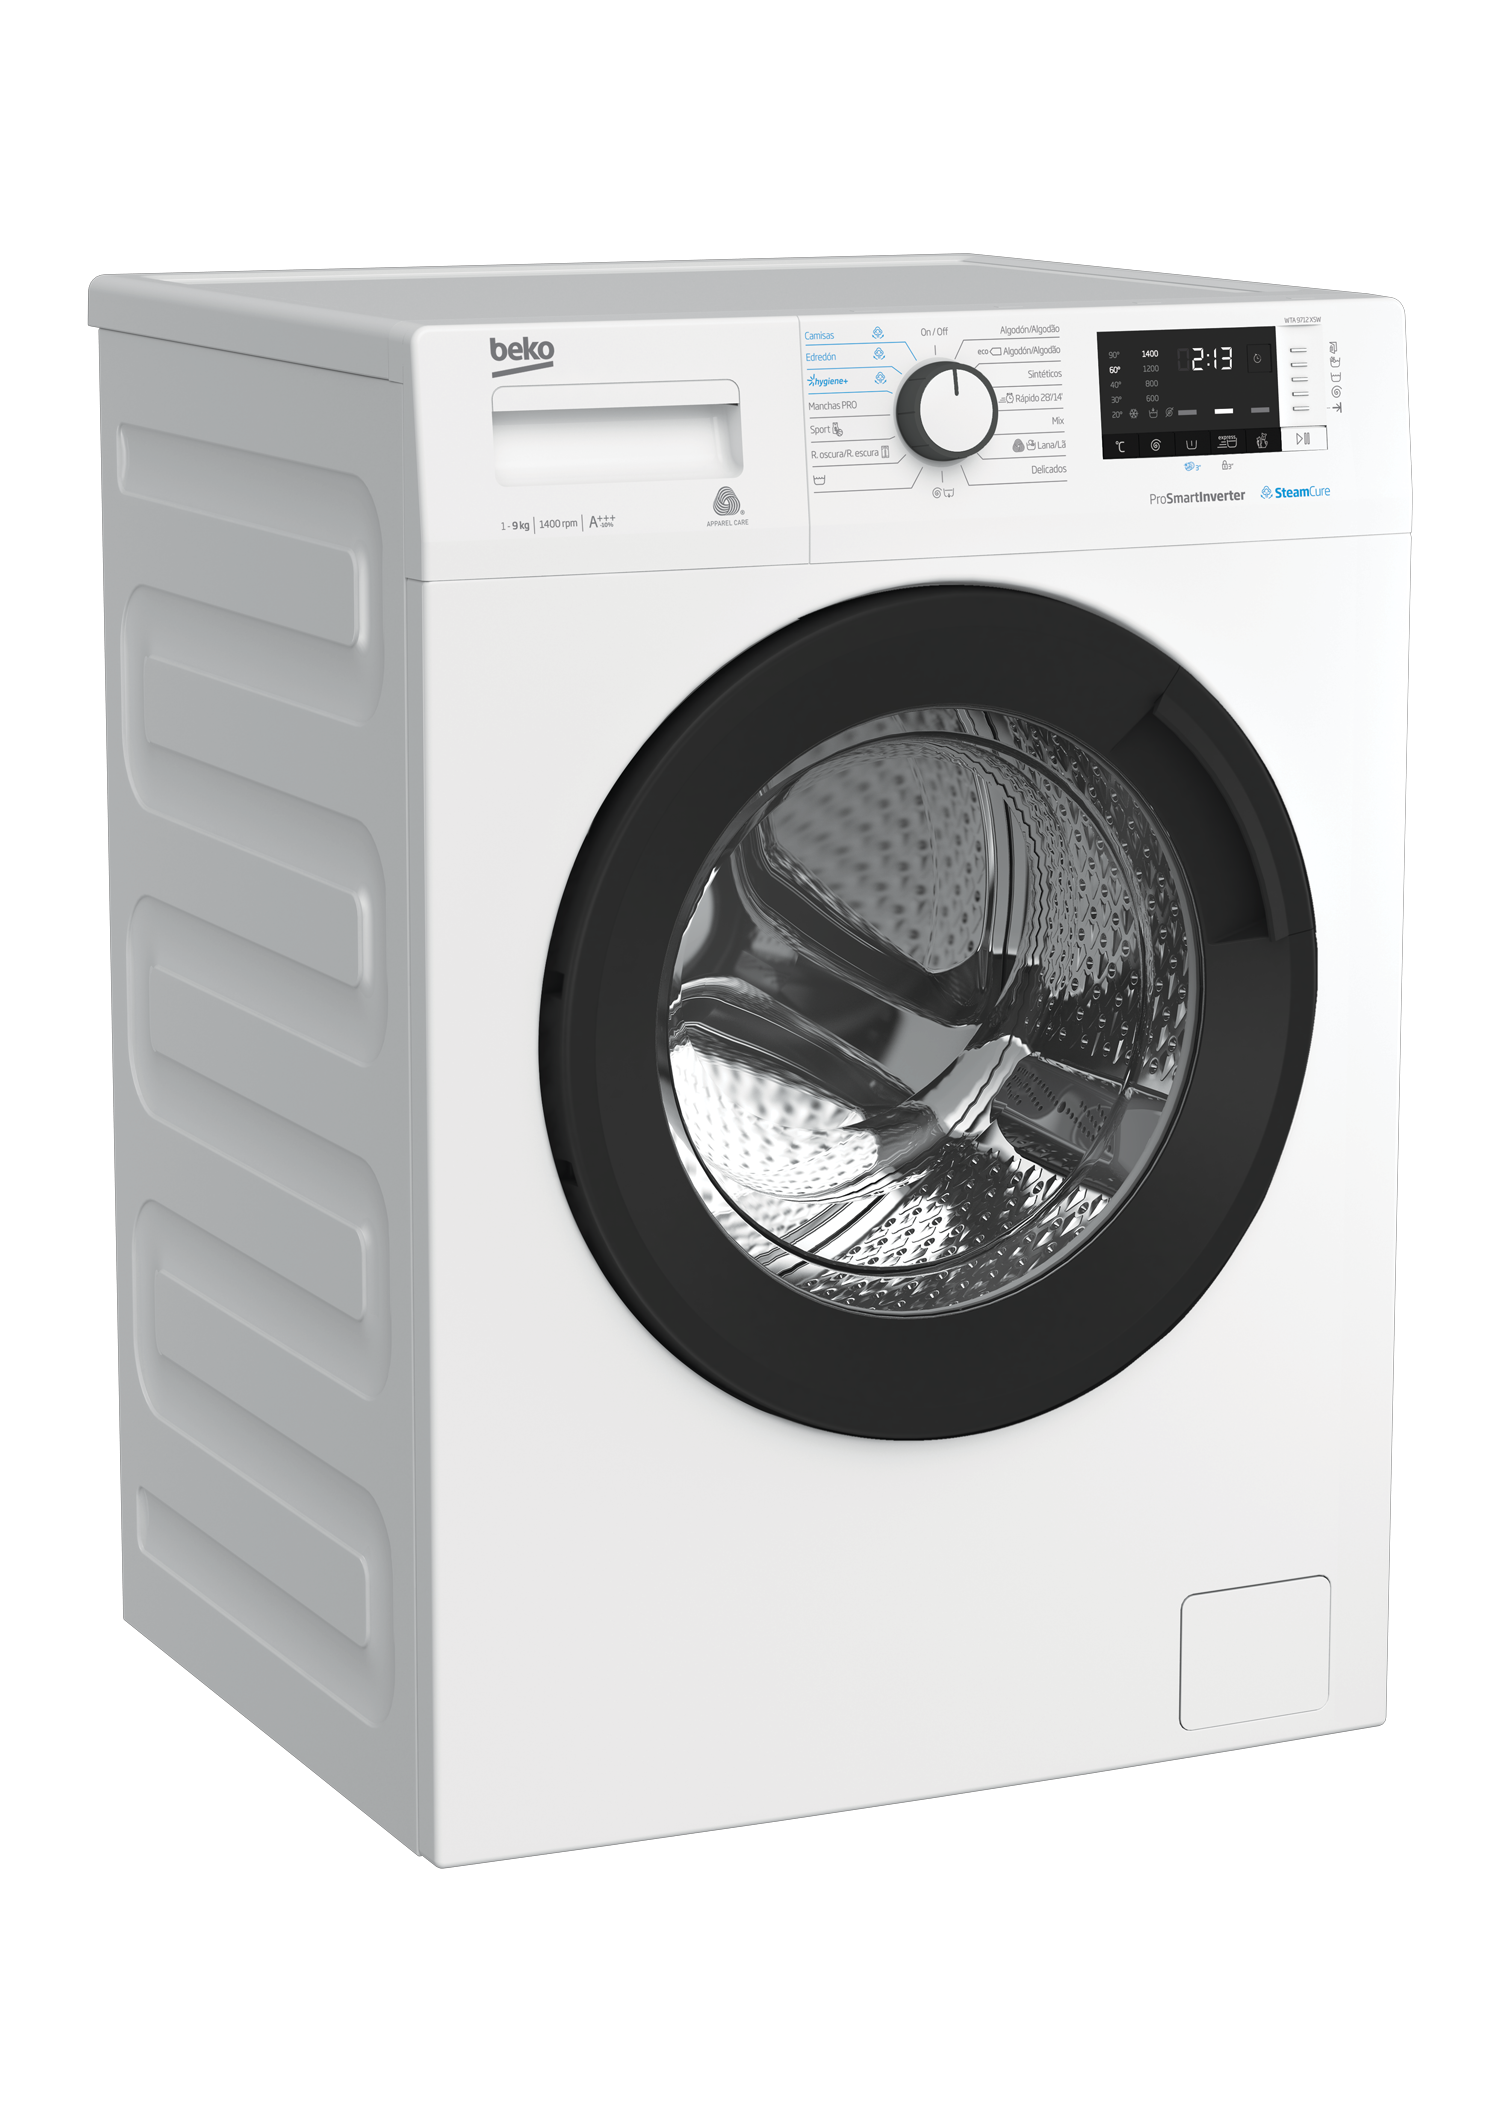 Freestanding Washing Machine (9 kg, 1400 rpm) WTA 9712 XSW